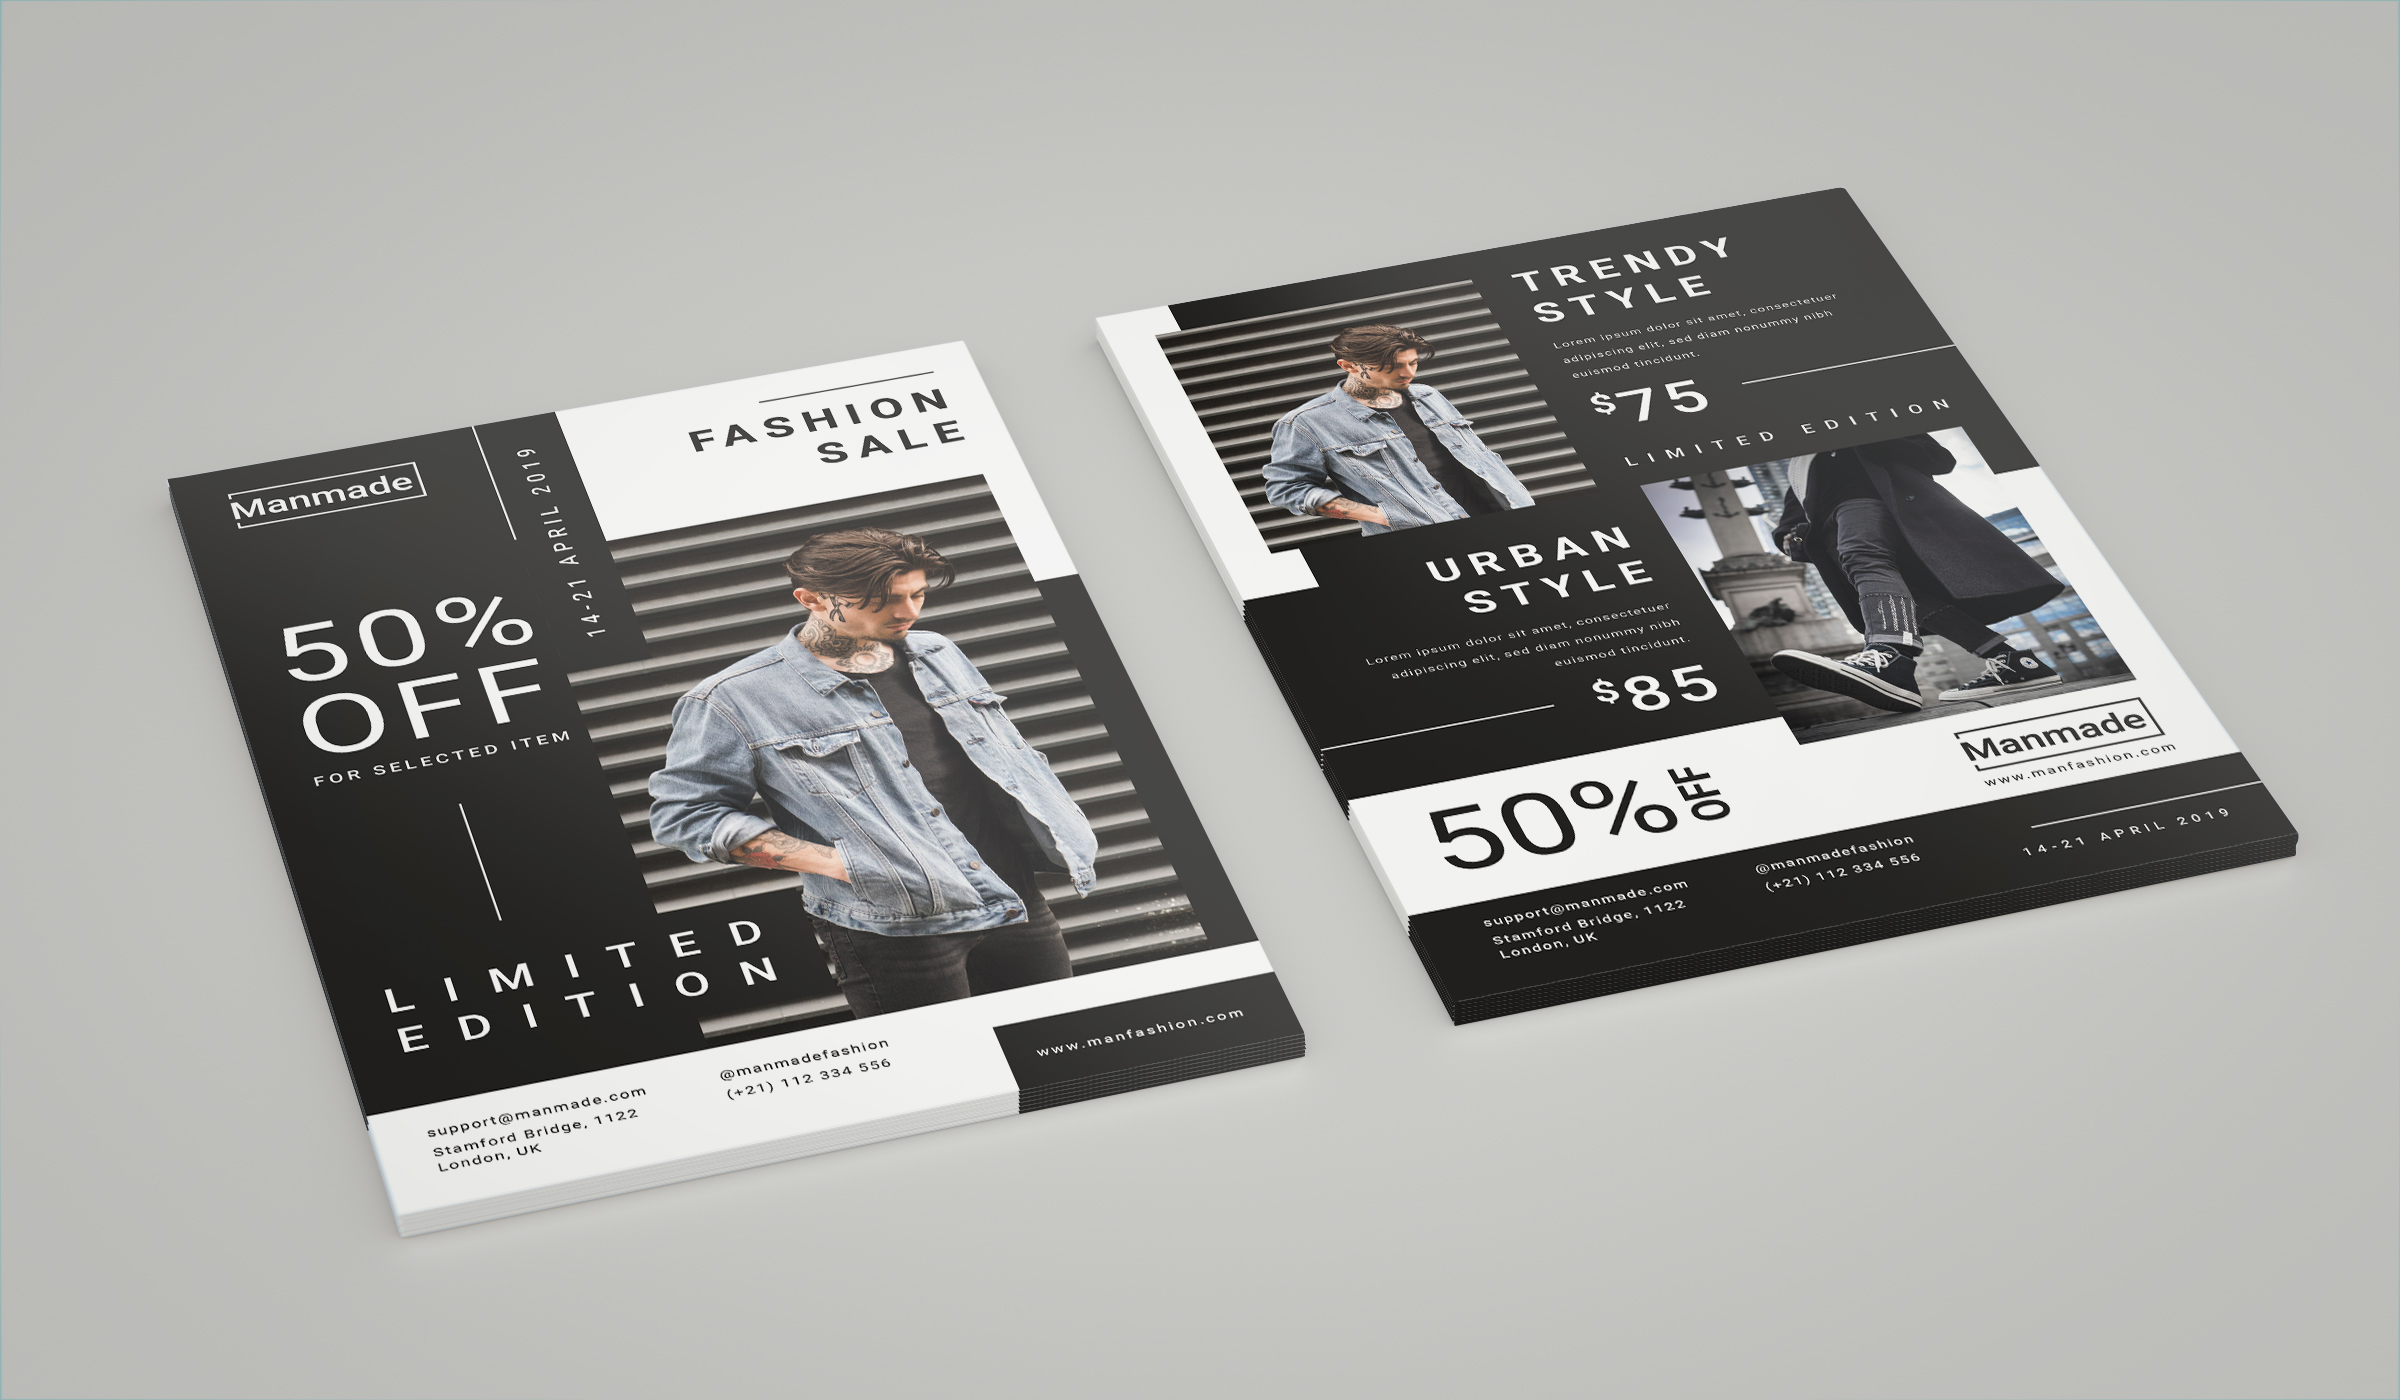 Man Made - Fashion Flyer example image 2